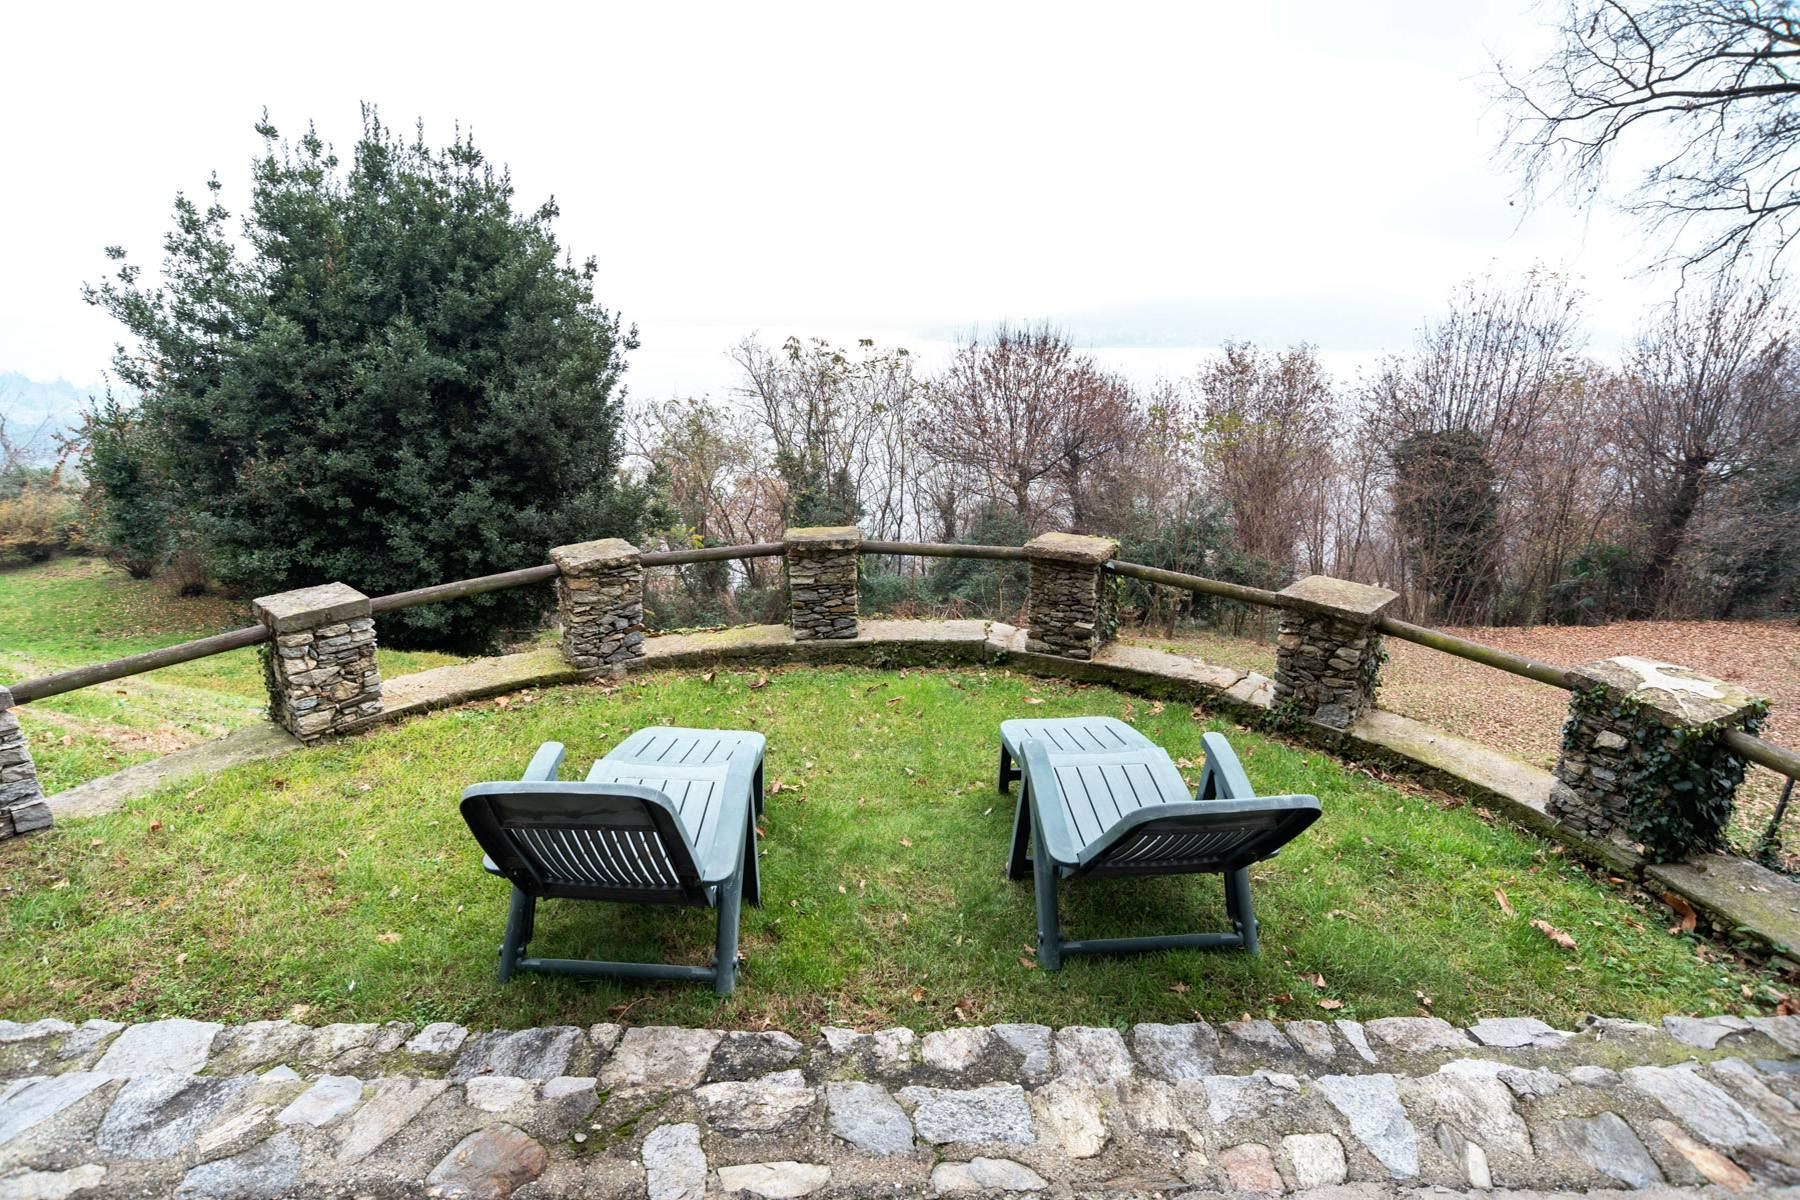 Among the hills of Massino Visconti, Villa surrounded by greenery - 1